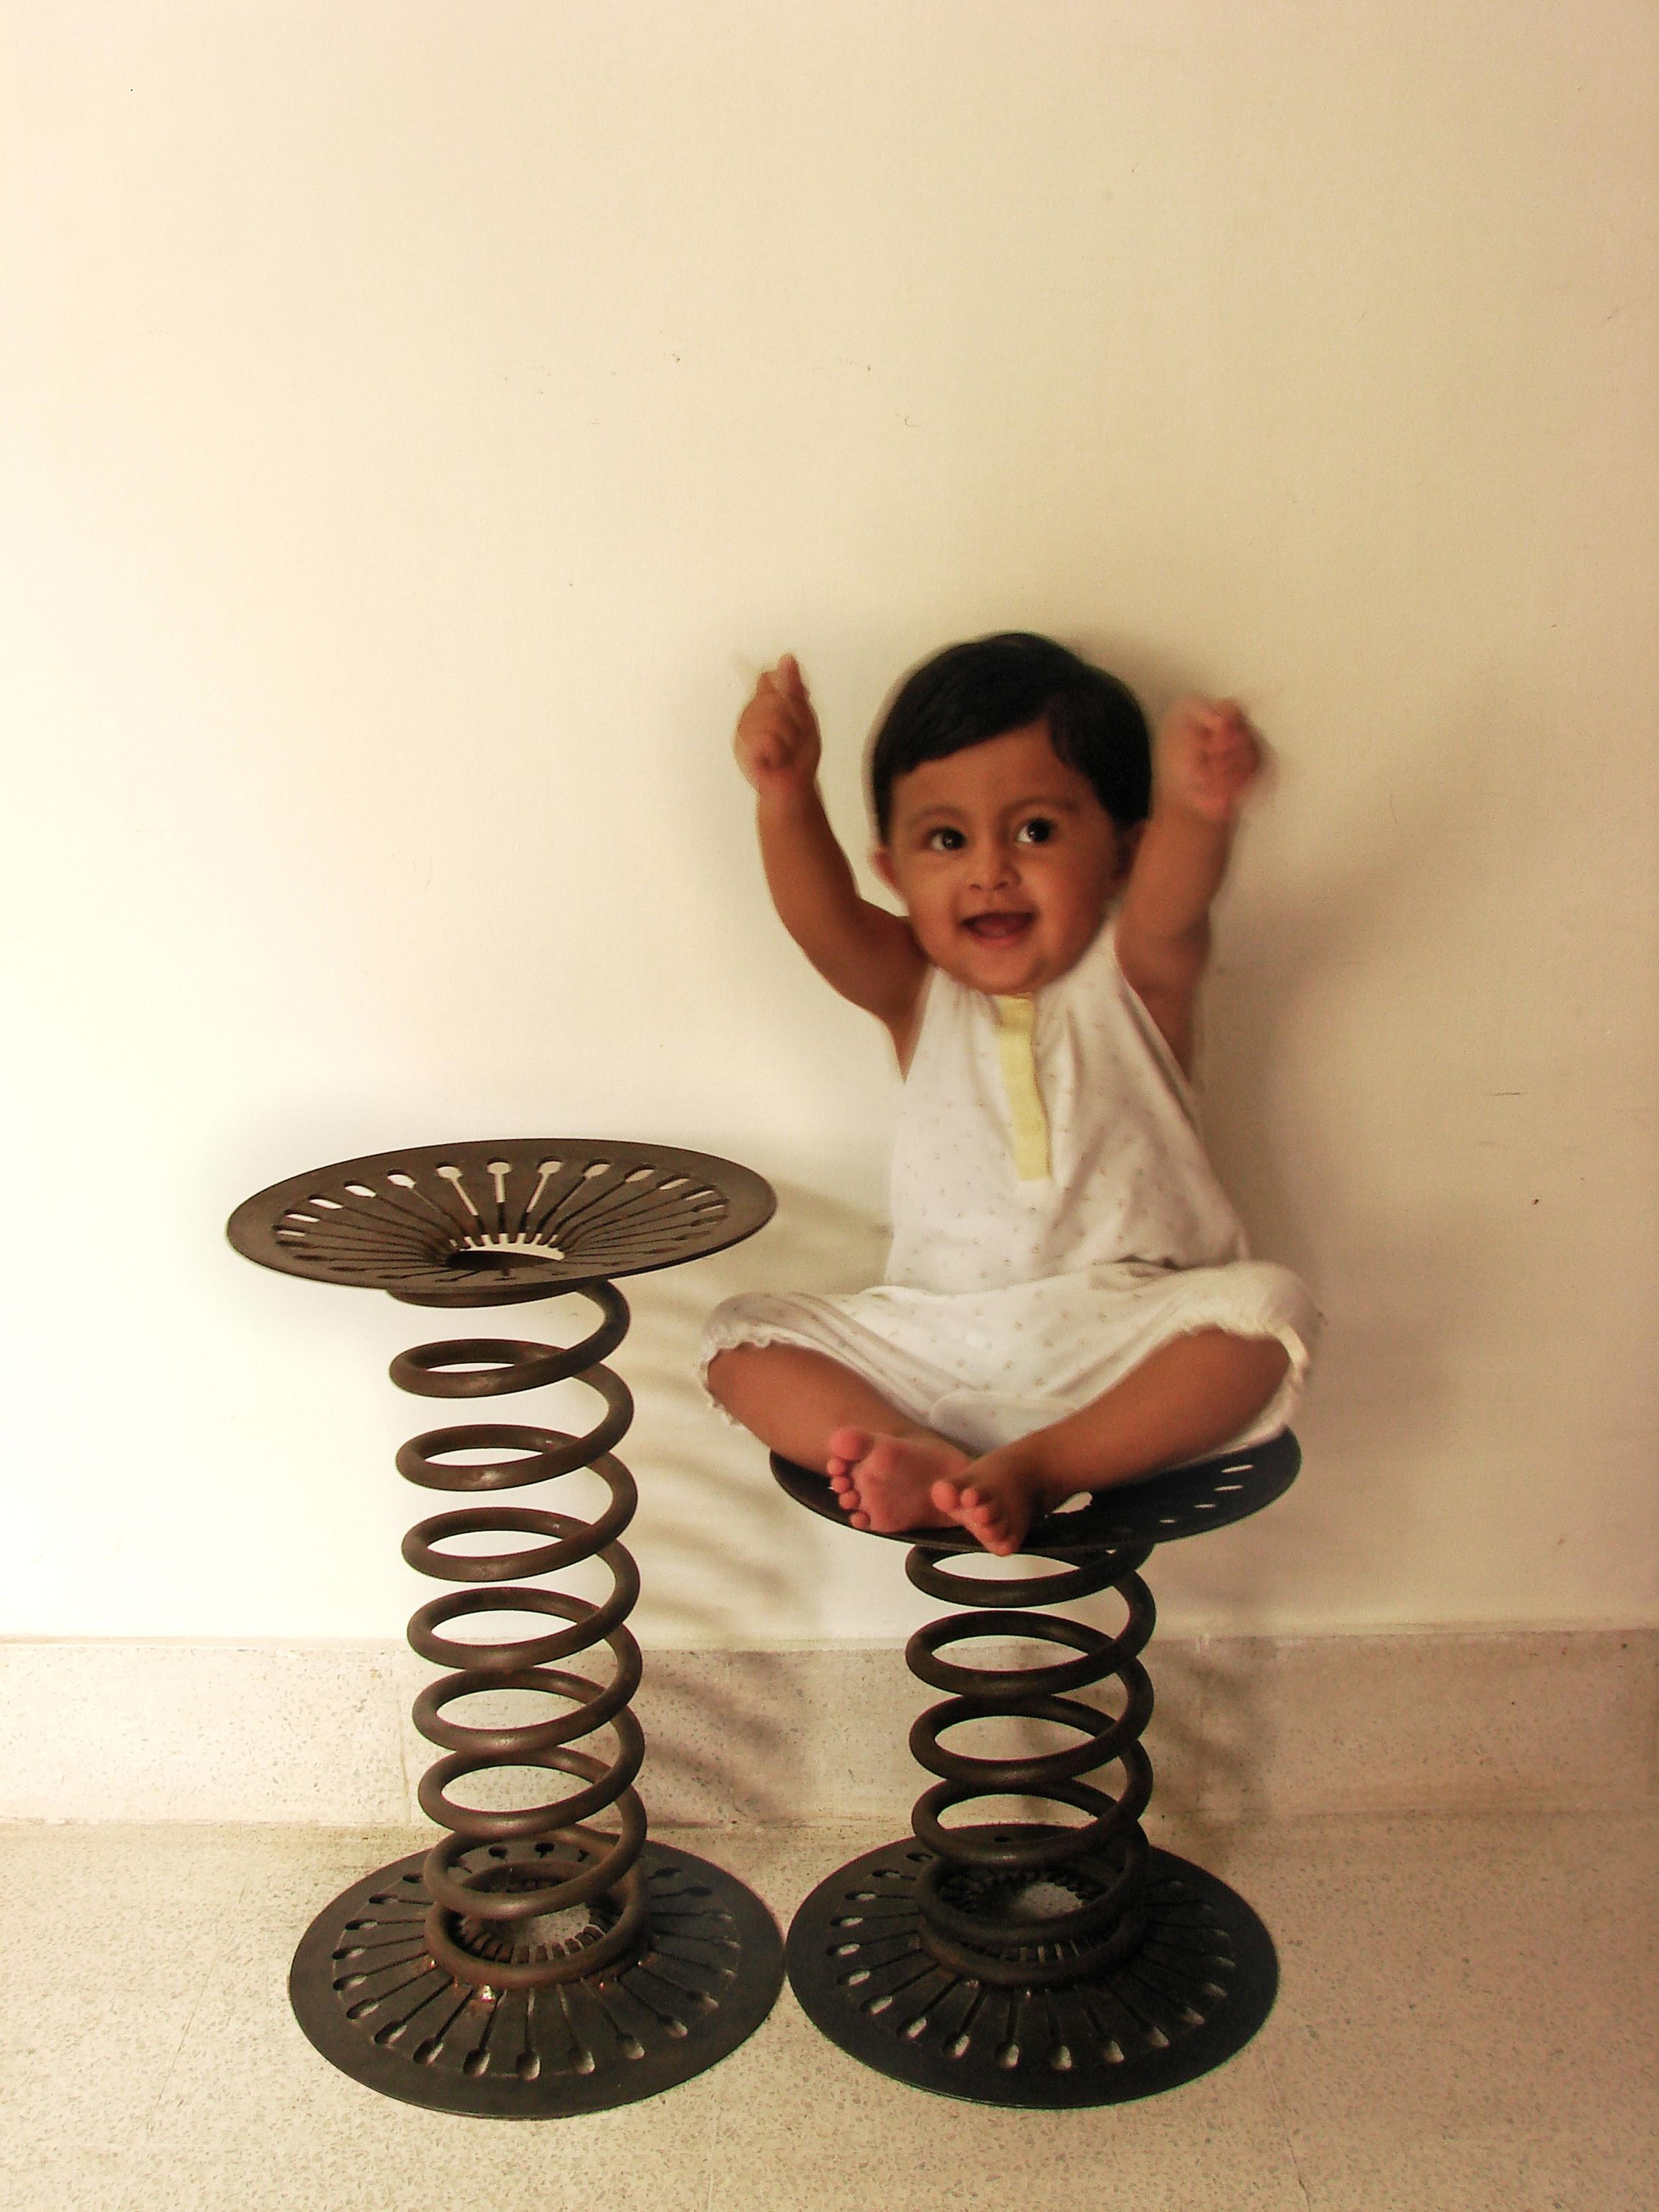 SUSPENSION & CLUTCH PLATE STOOL - Re-purposing the scrap automotive parts.JPG